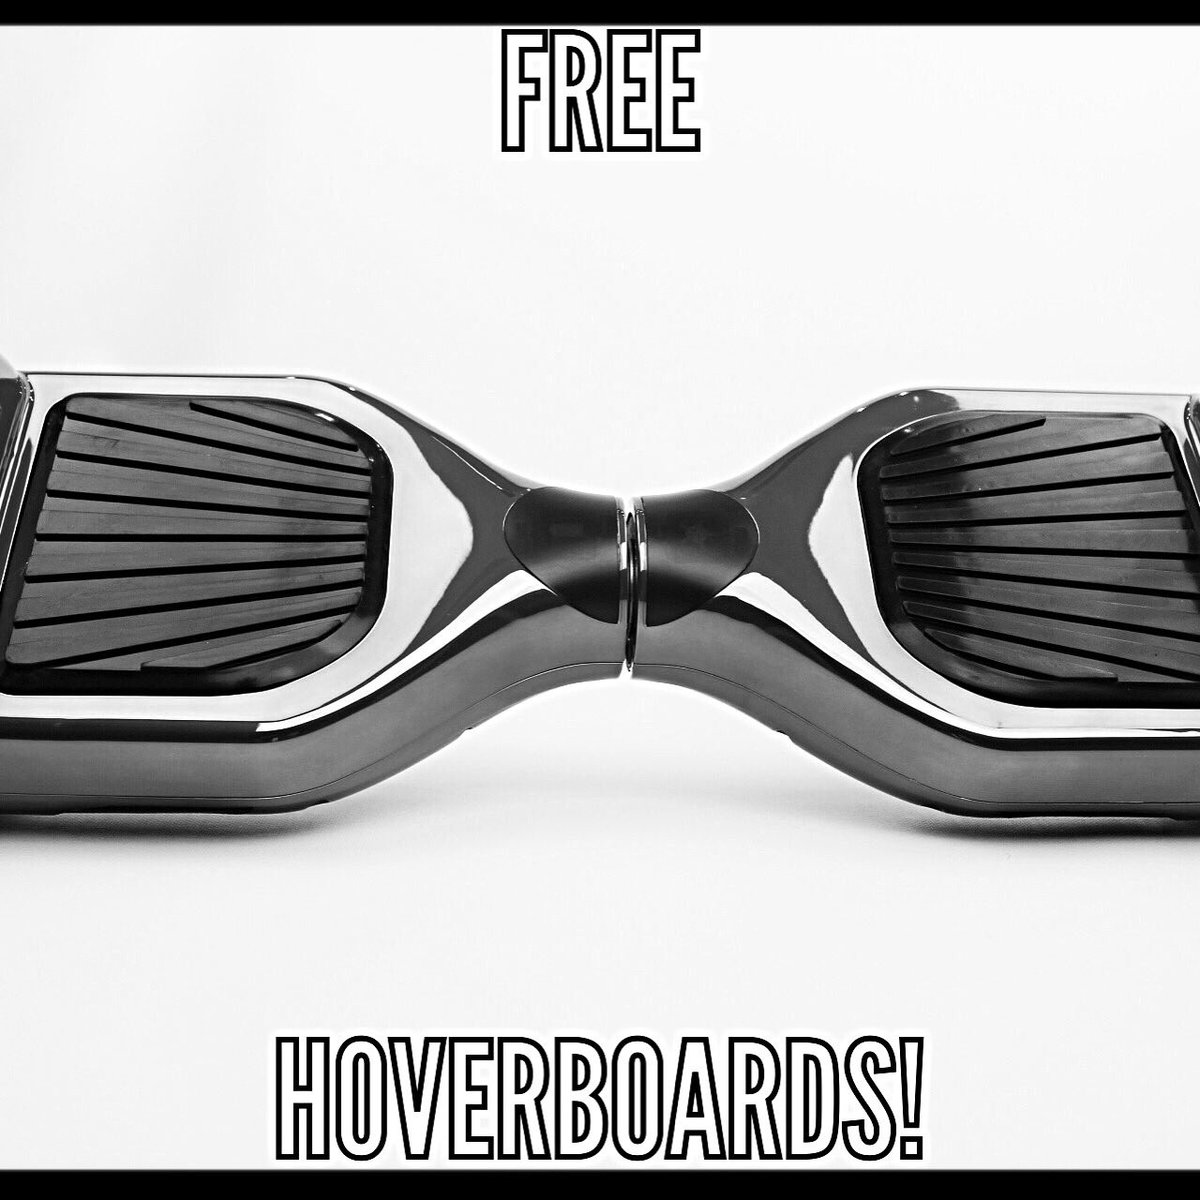 29+ Free Hoverboard Giveaway  Pics